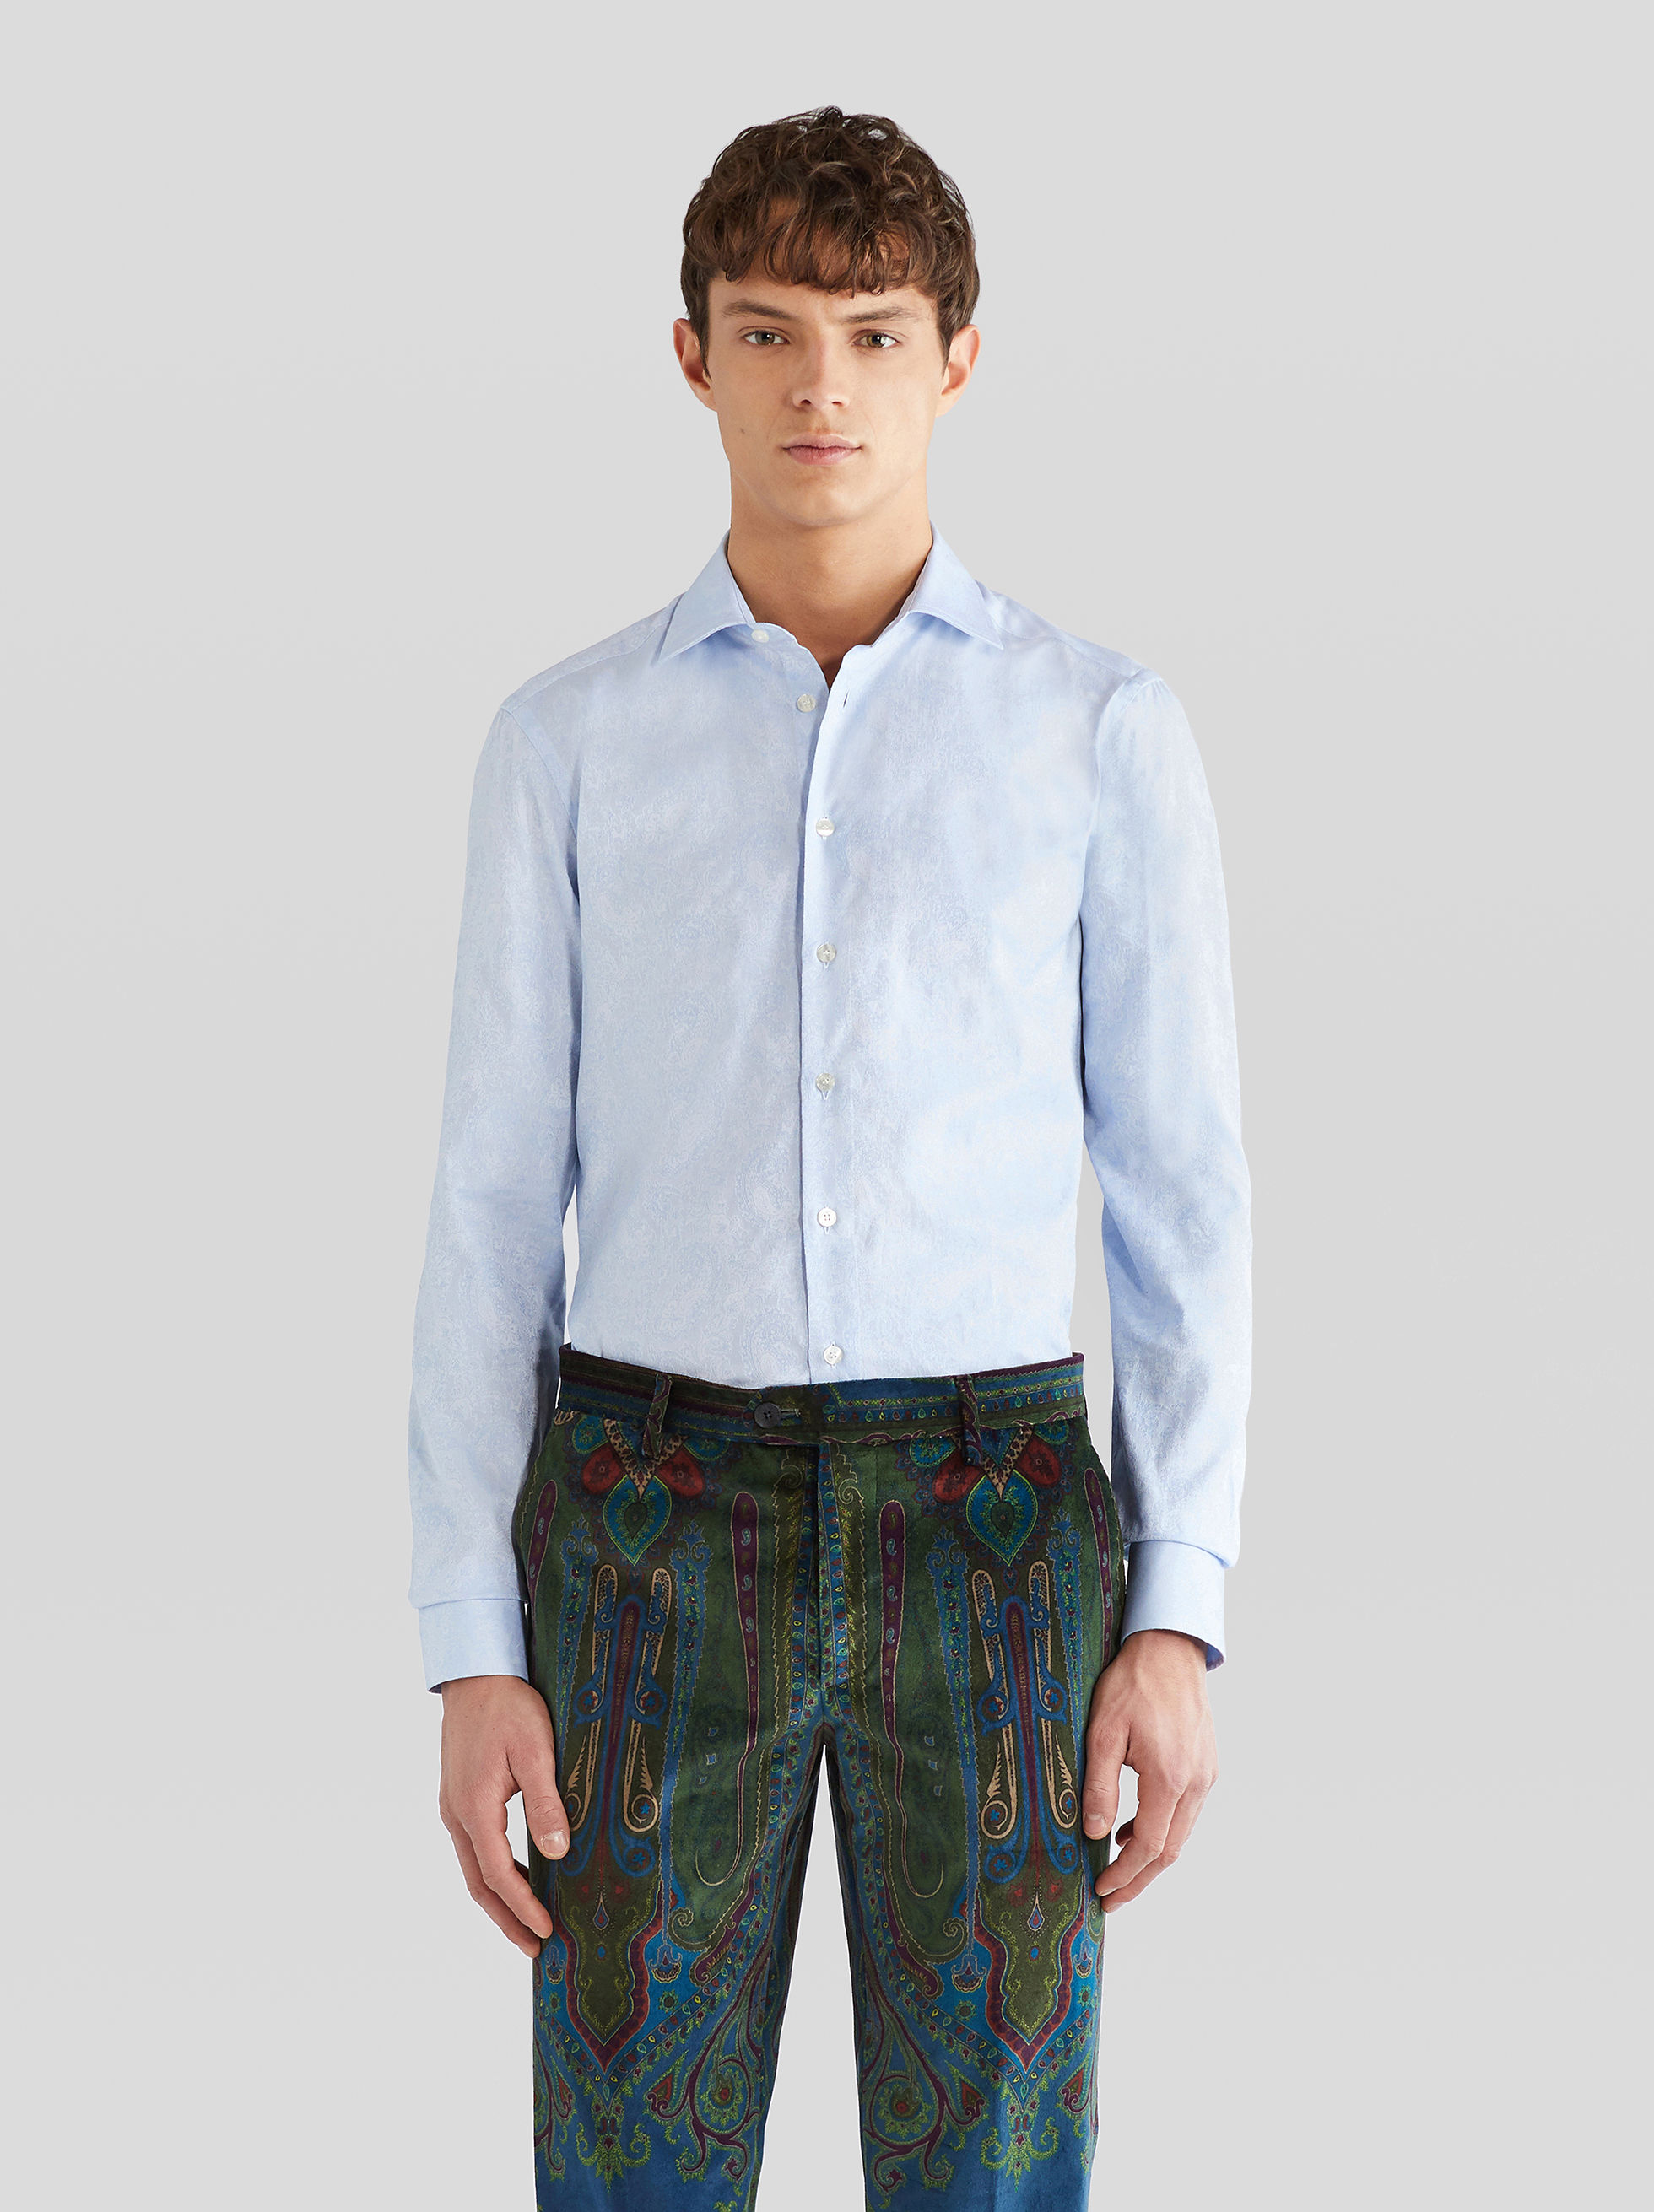 JACQUARD SHIRT WITH PAISLEY PATTERNS